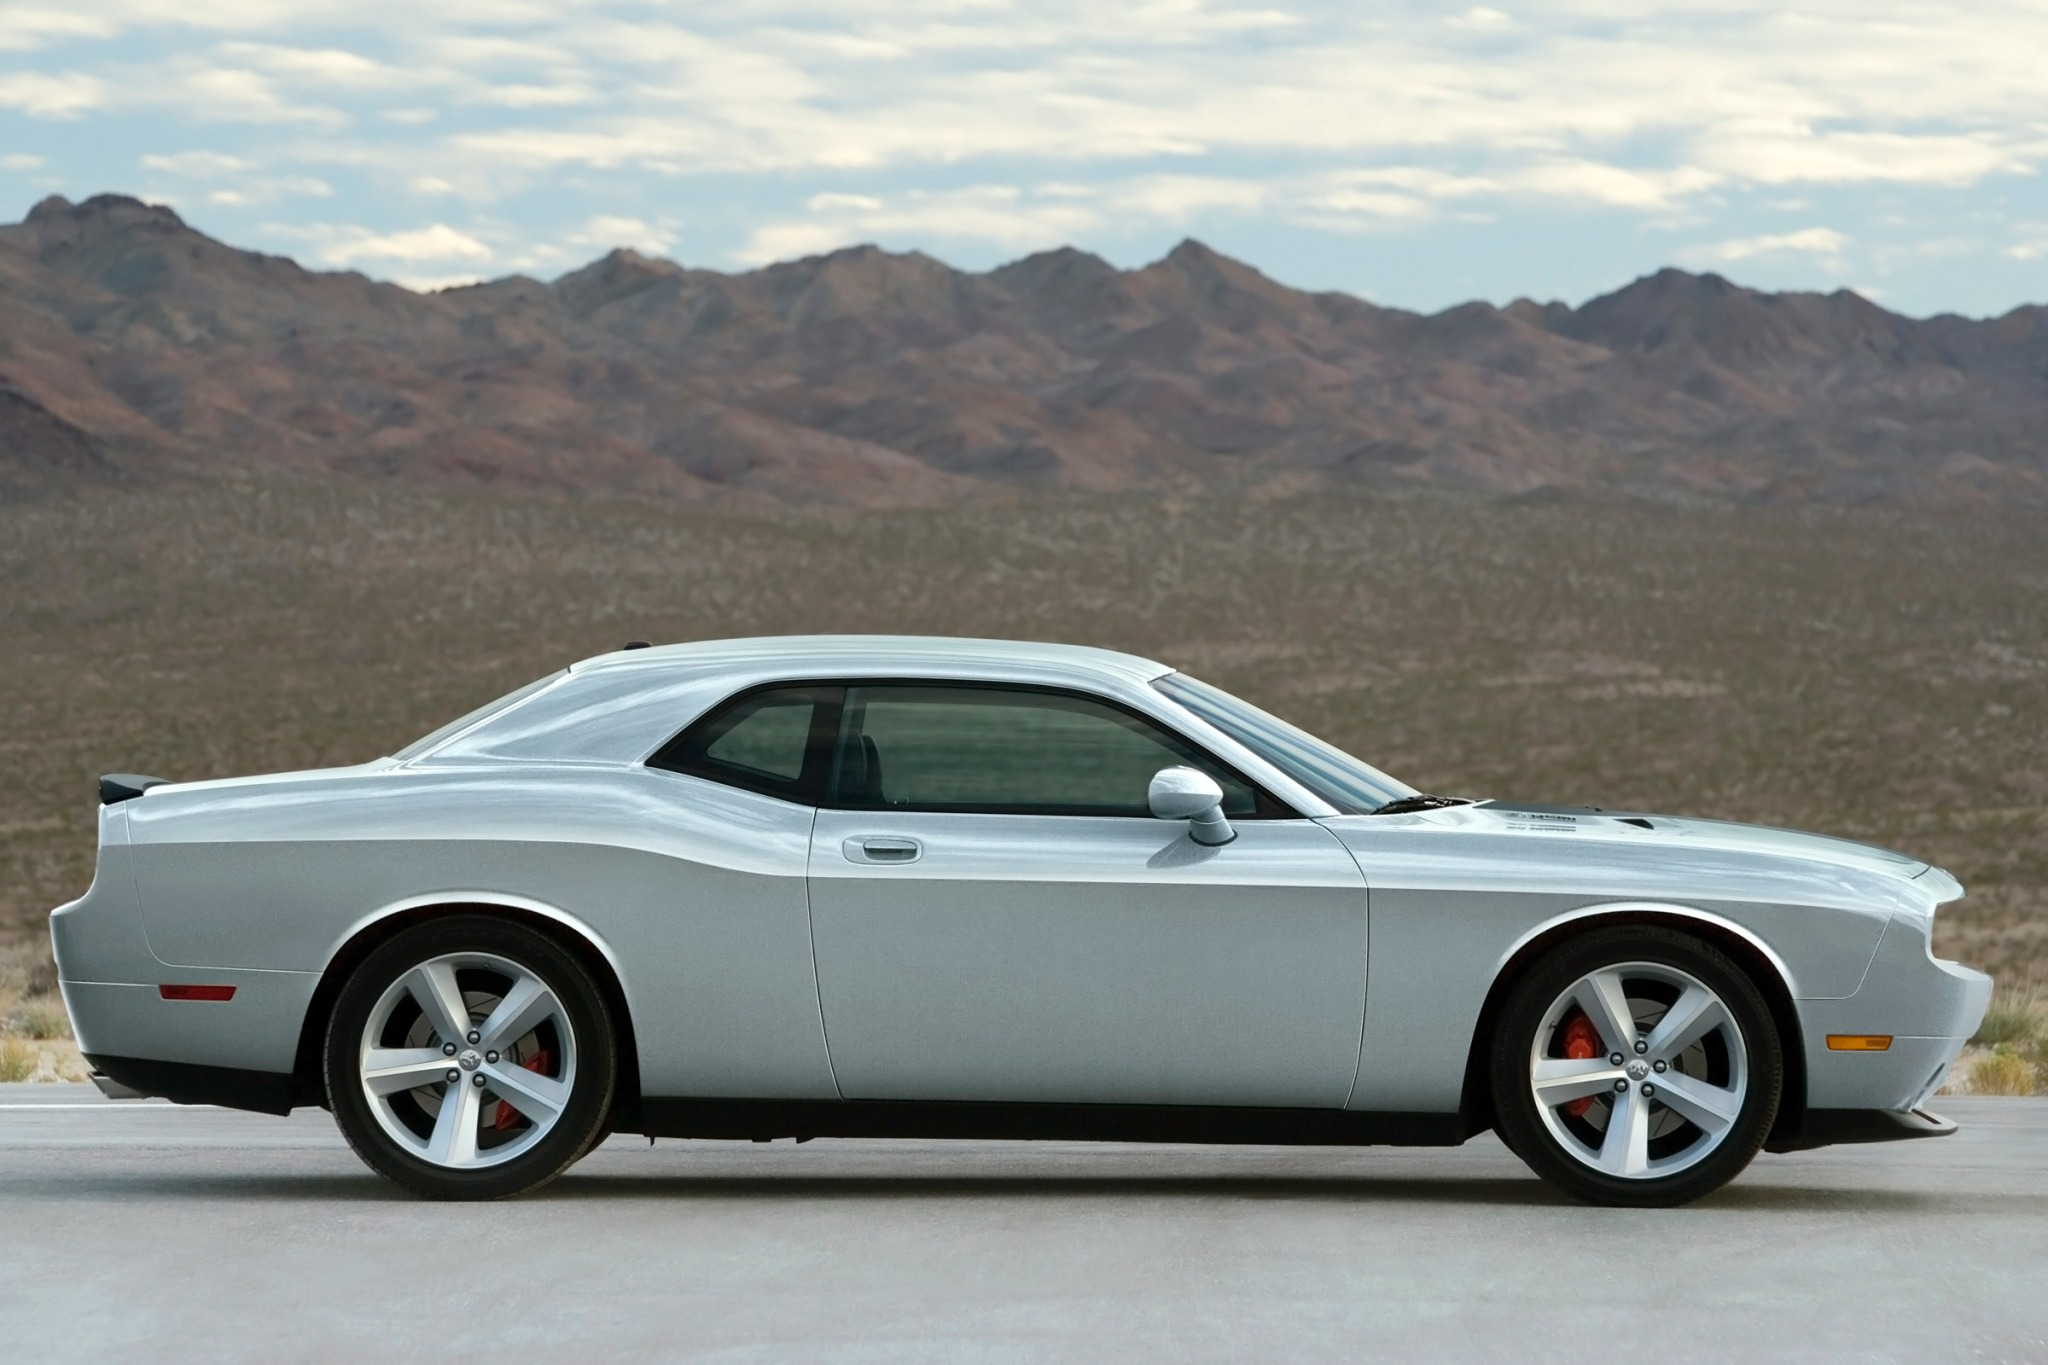 2010 Dodge Challenger SRT interior #7